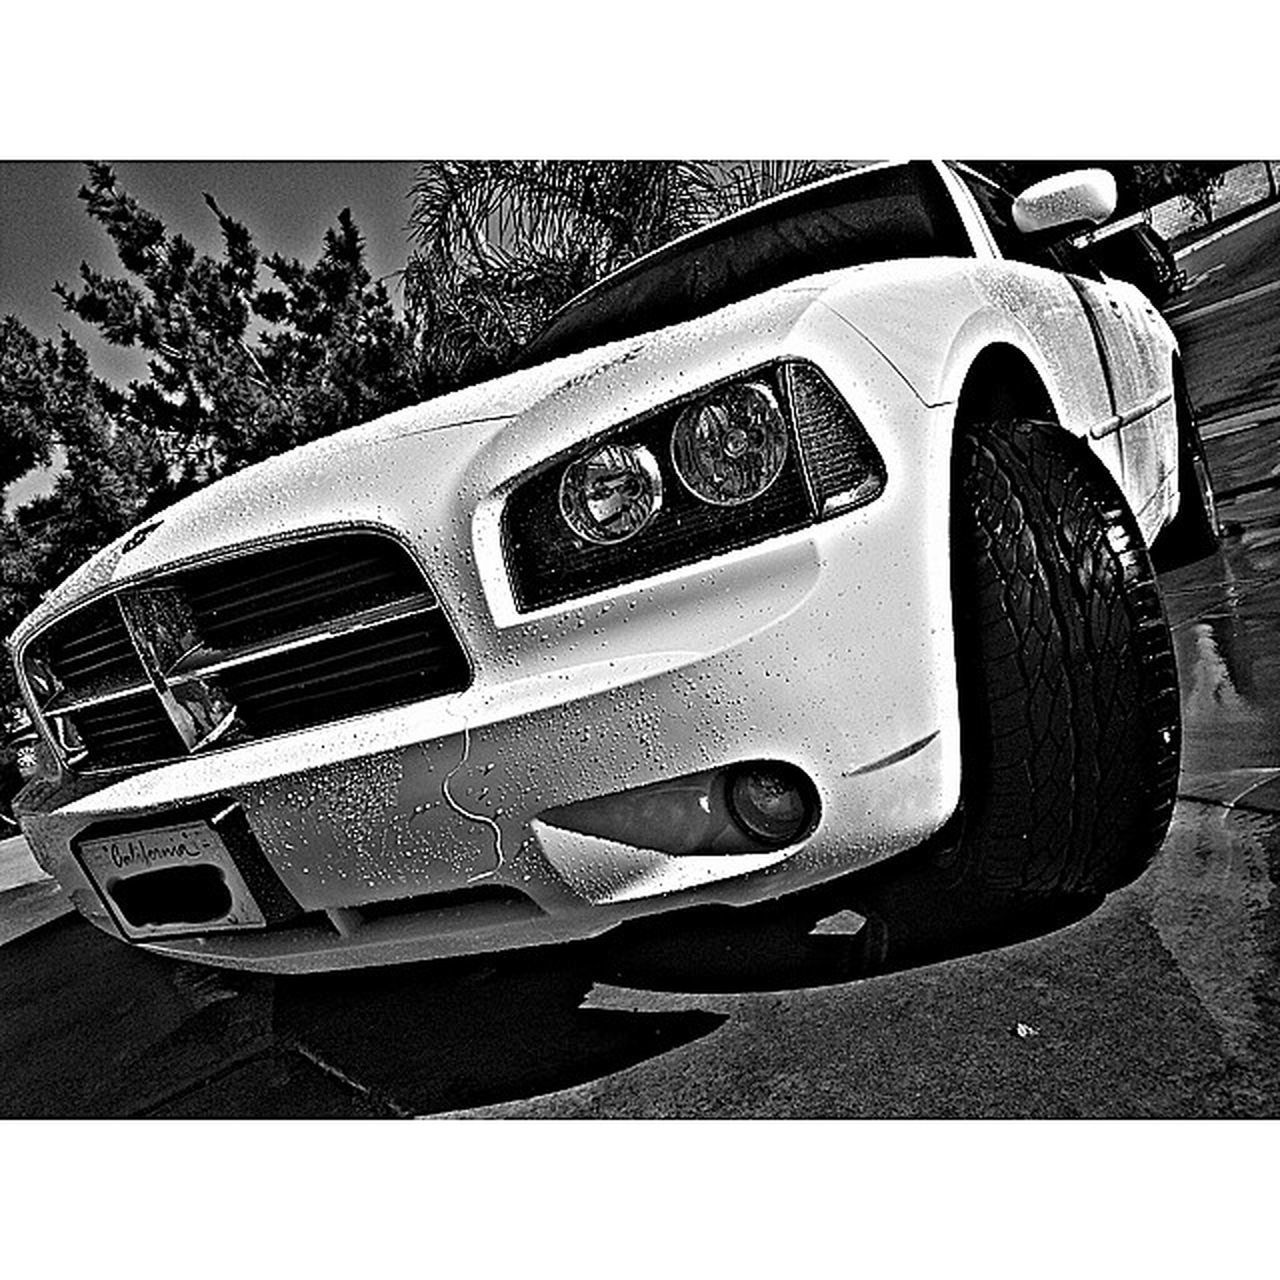 Bath time :) 2010DodgeCharger Dodgecharger Dodge LostPhotography photo photos pic pics picture photographer pictures snapshot art beautiful instagood color all_shots exposure composition focus capture moment photoshoot photooftheday hdrimage hdr_gallery hdr_love hdrfreak hdrama hdrart